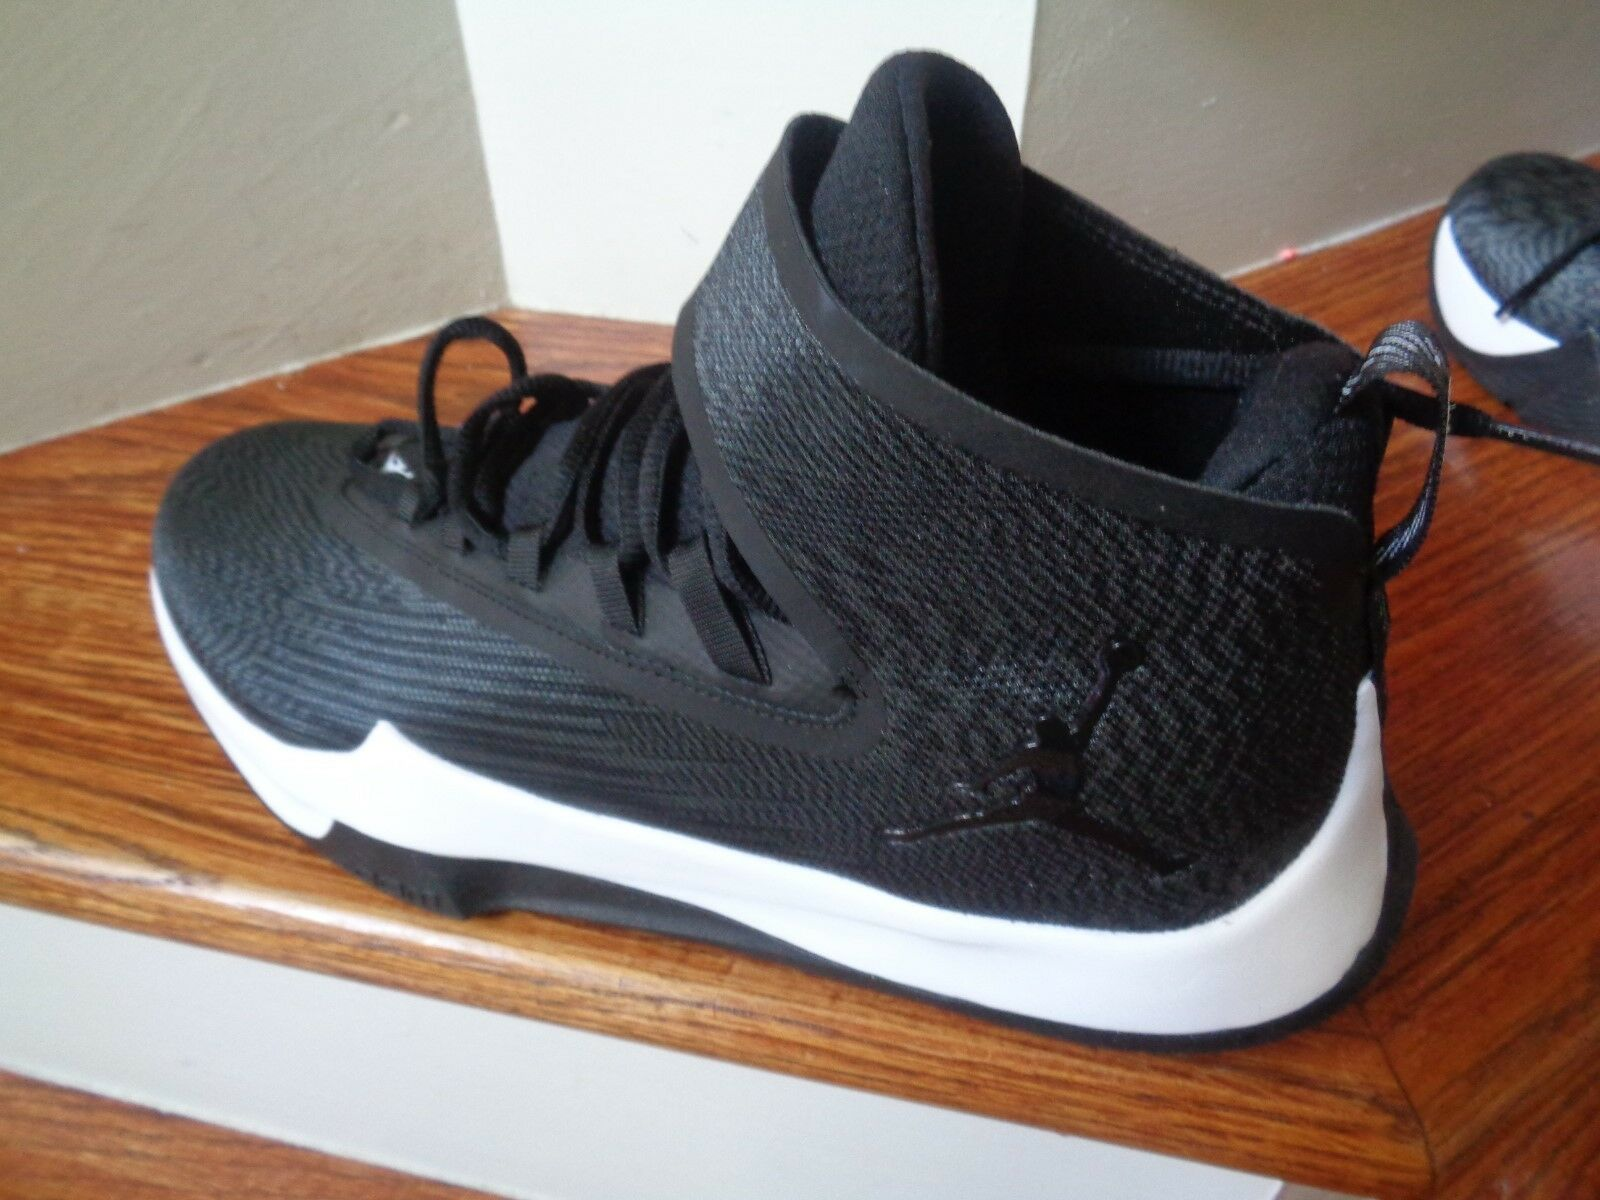 Nike Air Jordan Fly Unlimited Men's Basketball Shoes, AA1282 010 Size 10.5 NEW